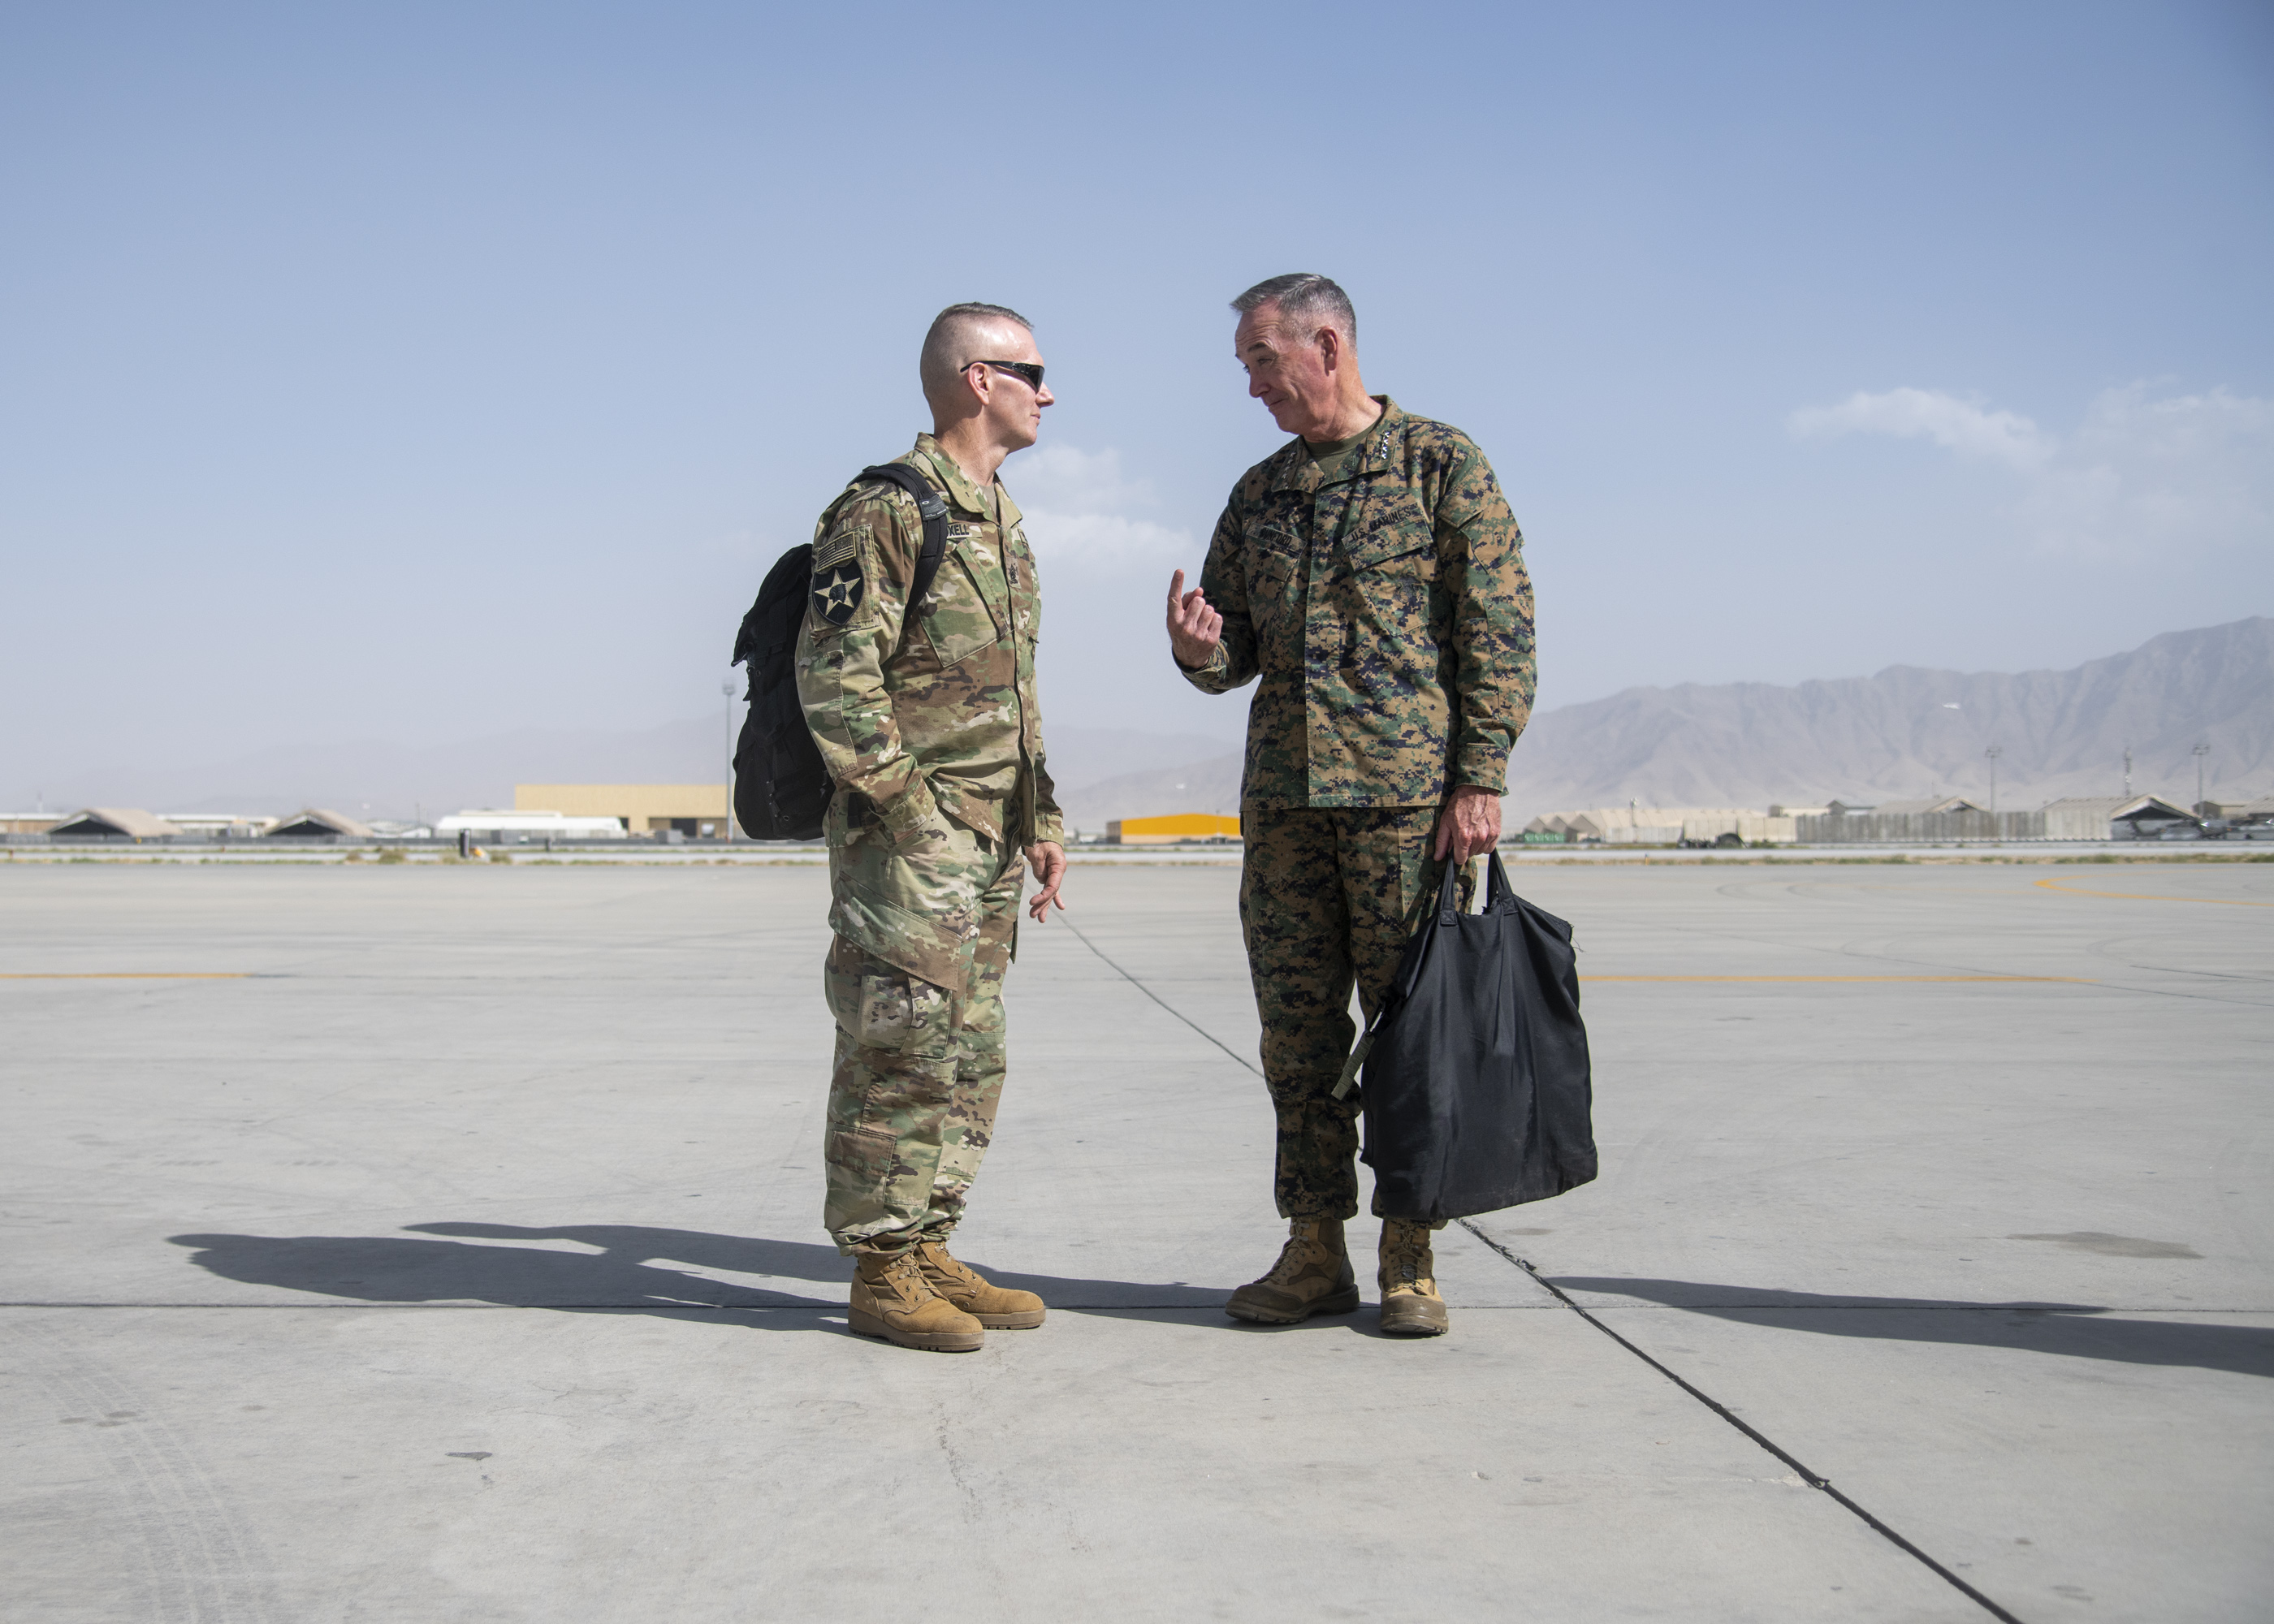 Marine Corps Gen. Joe Dunford, chairman of the Joint Chiefs of Staff, speaks with Army Command Sgt. Maj. John W. Troxell, senior enlisted advisor to the chairman on the Joint Chiefs of Staff at Bagram Airfield, Sept. 7, 2018. (DoD Photo by Navy Petty Officer 1st Class Dominique A. Pineiro)